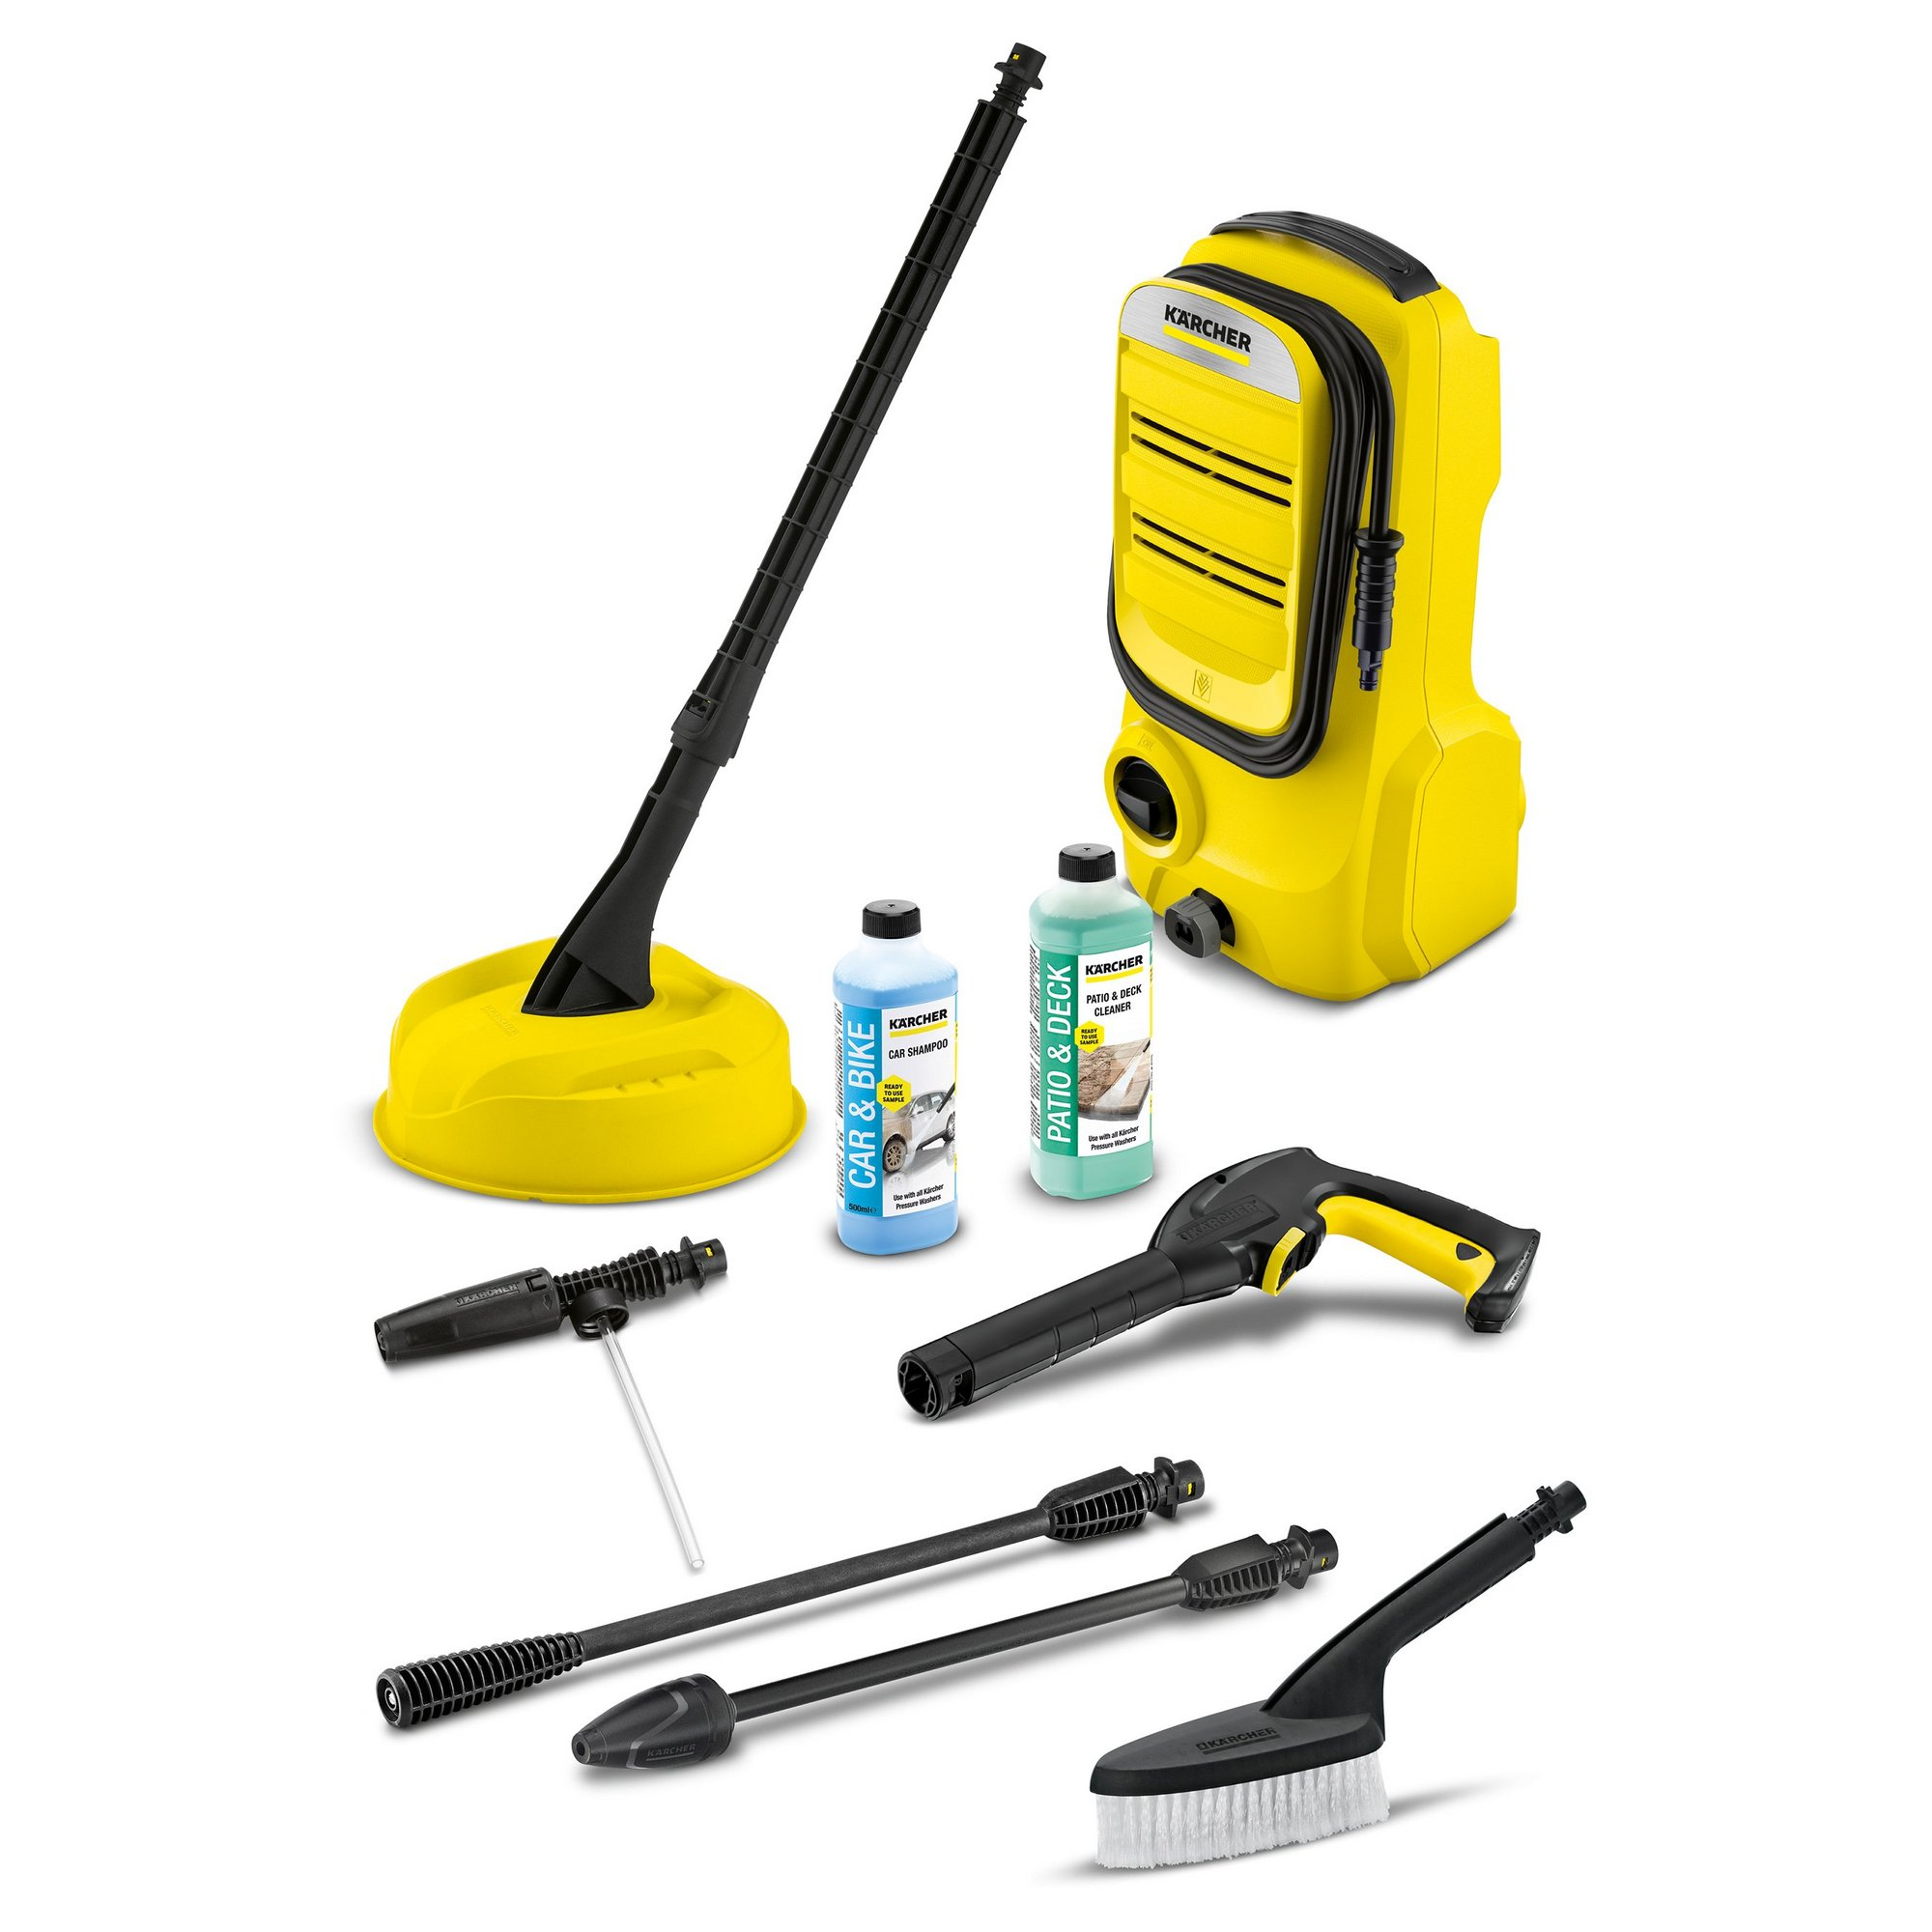 Image of Karcher 1400W K2 Compact Home and Car Pressure Washer